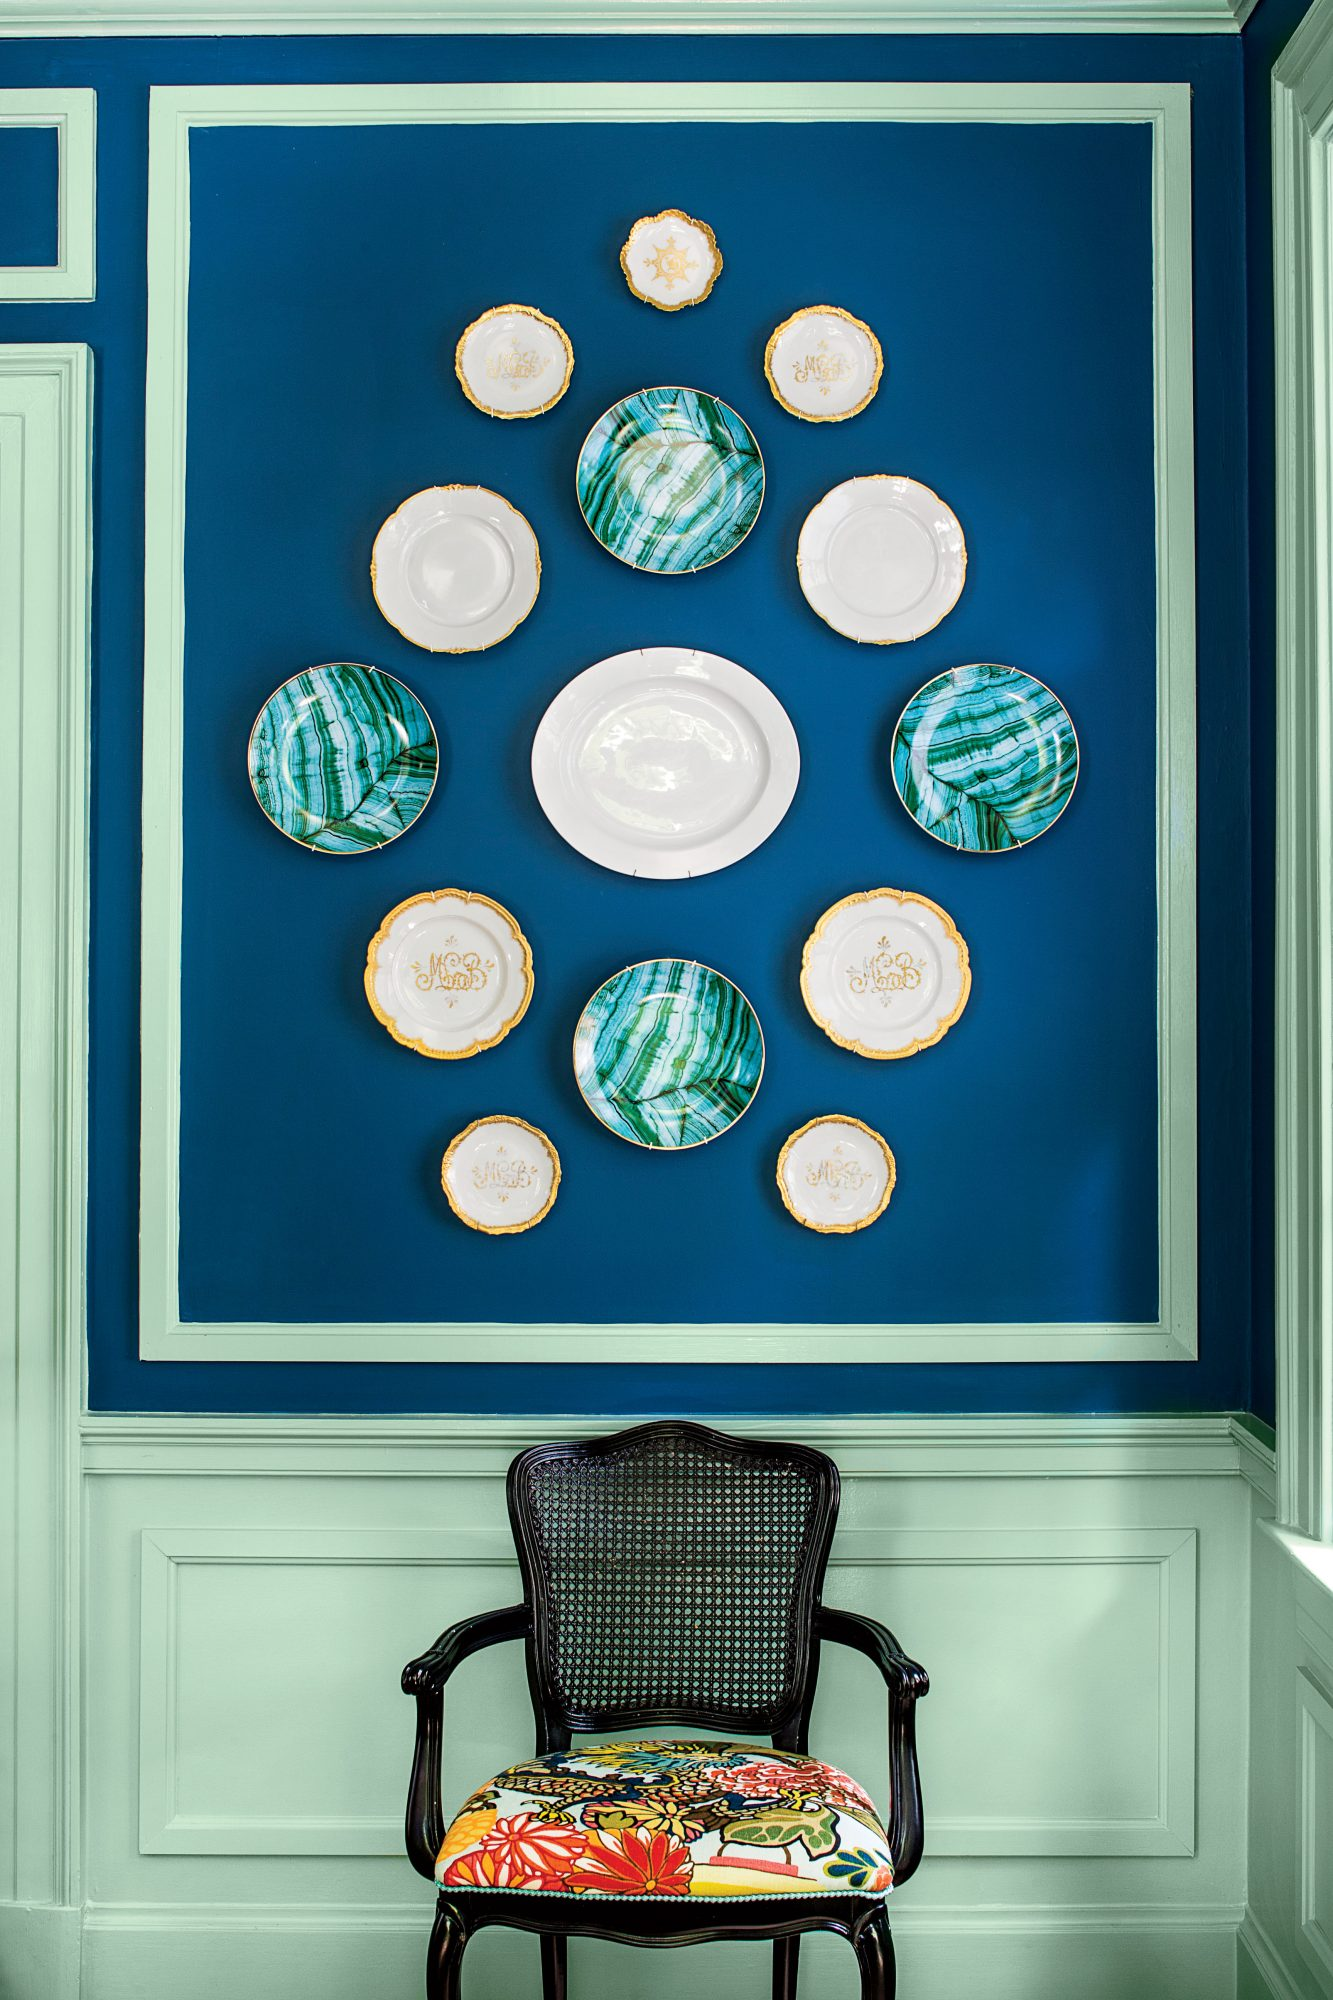 Why southerners decorate by hanging plates on the wall southern china plates wall amipublicfo Gallery